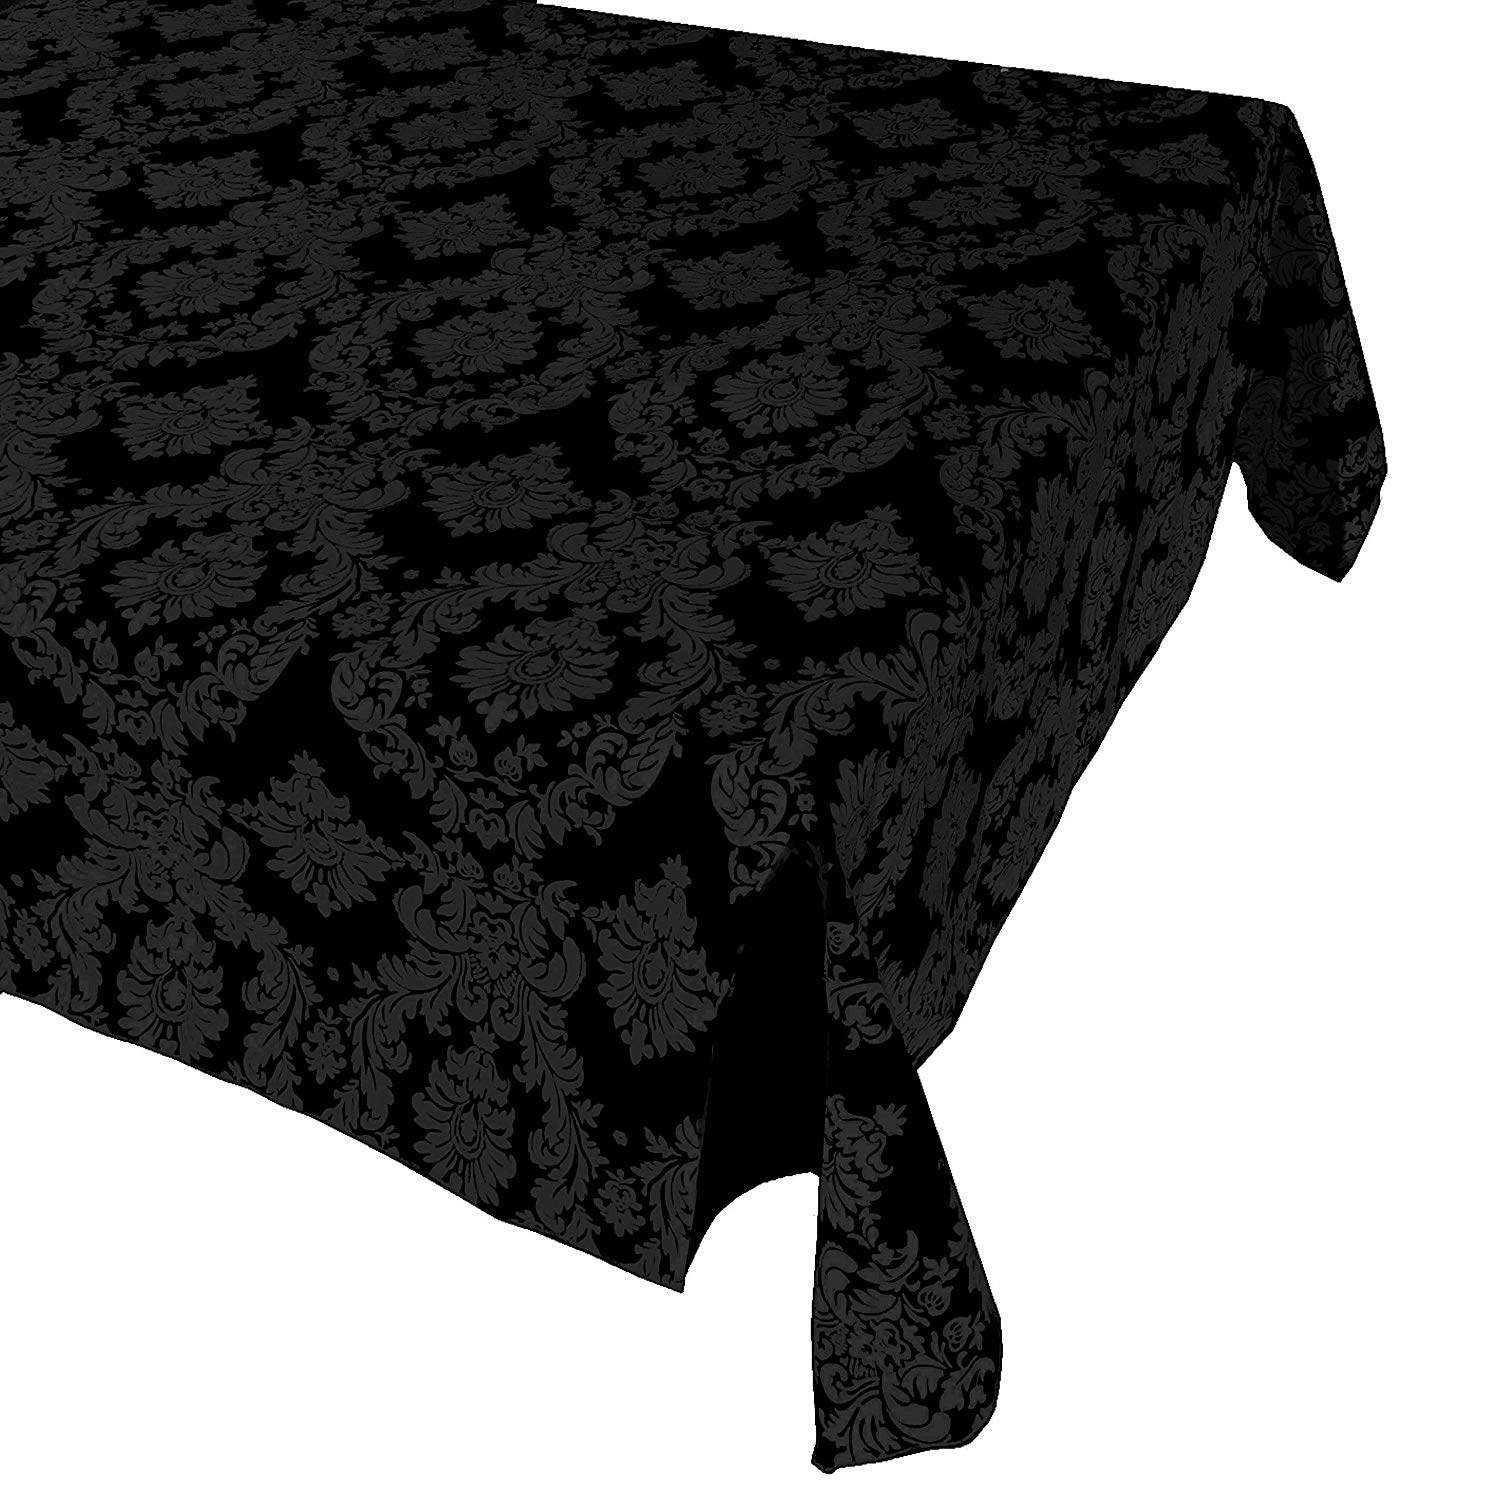 """Black Taffeta Damask Tablecloth / Fancy Pattern Tablecloth Decor / Dining Room and Event Decor (48"""" x 48"""")"""